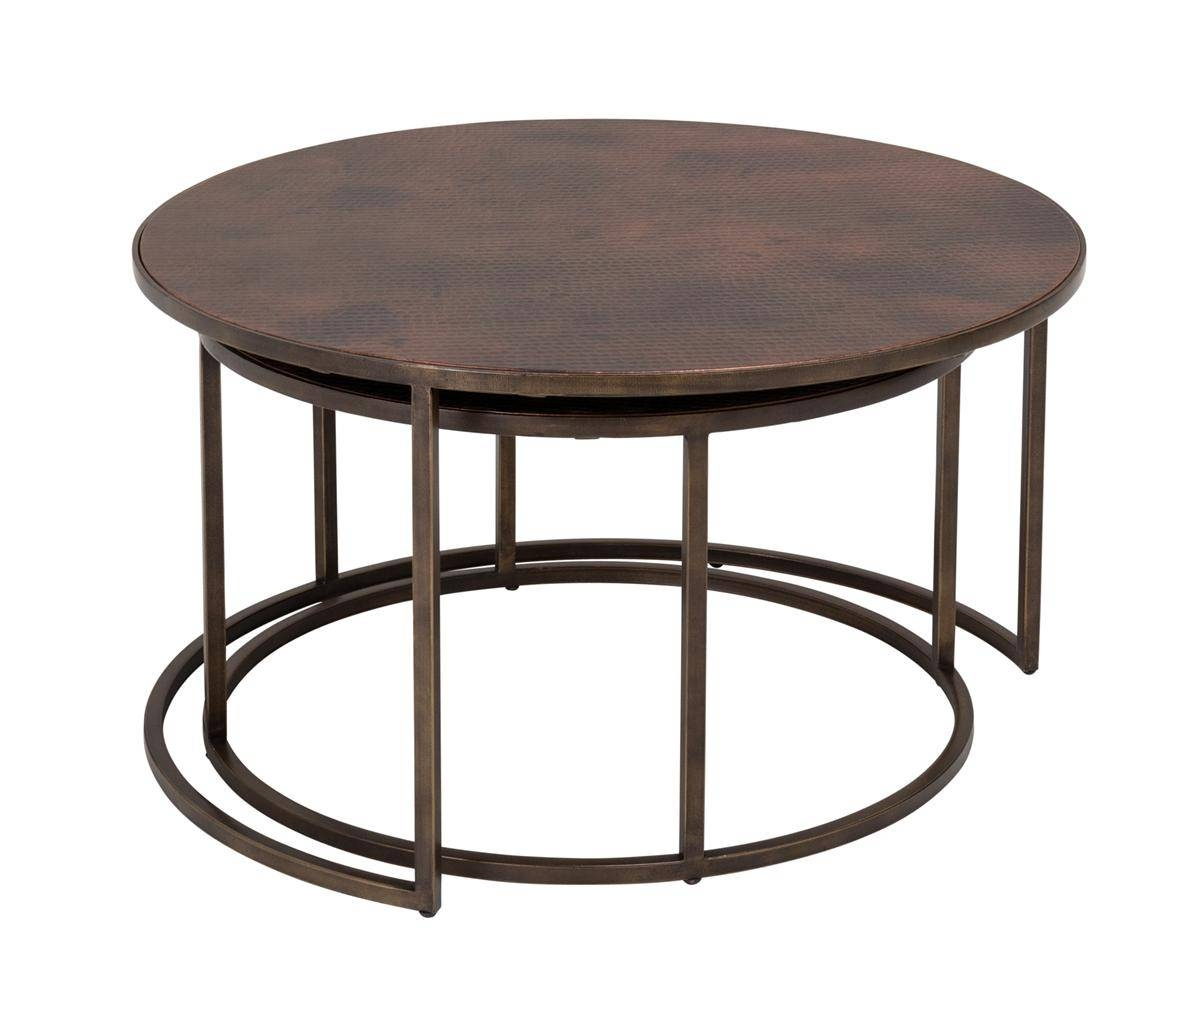 Copper-Top Nesting Coffee Tables | Weir's Furniture intended for Nest Coffee Tables (Image 7 of 30)